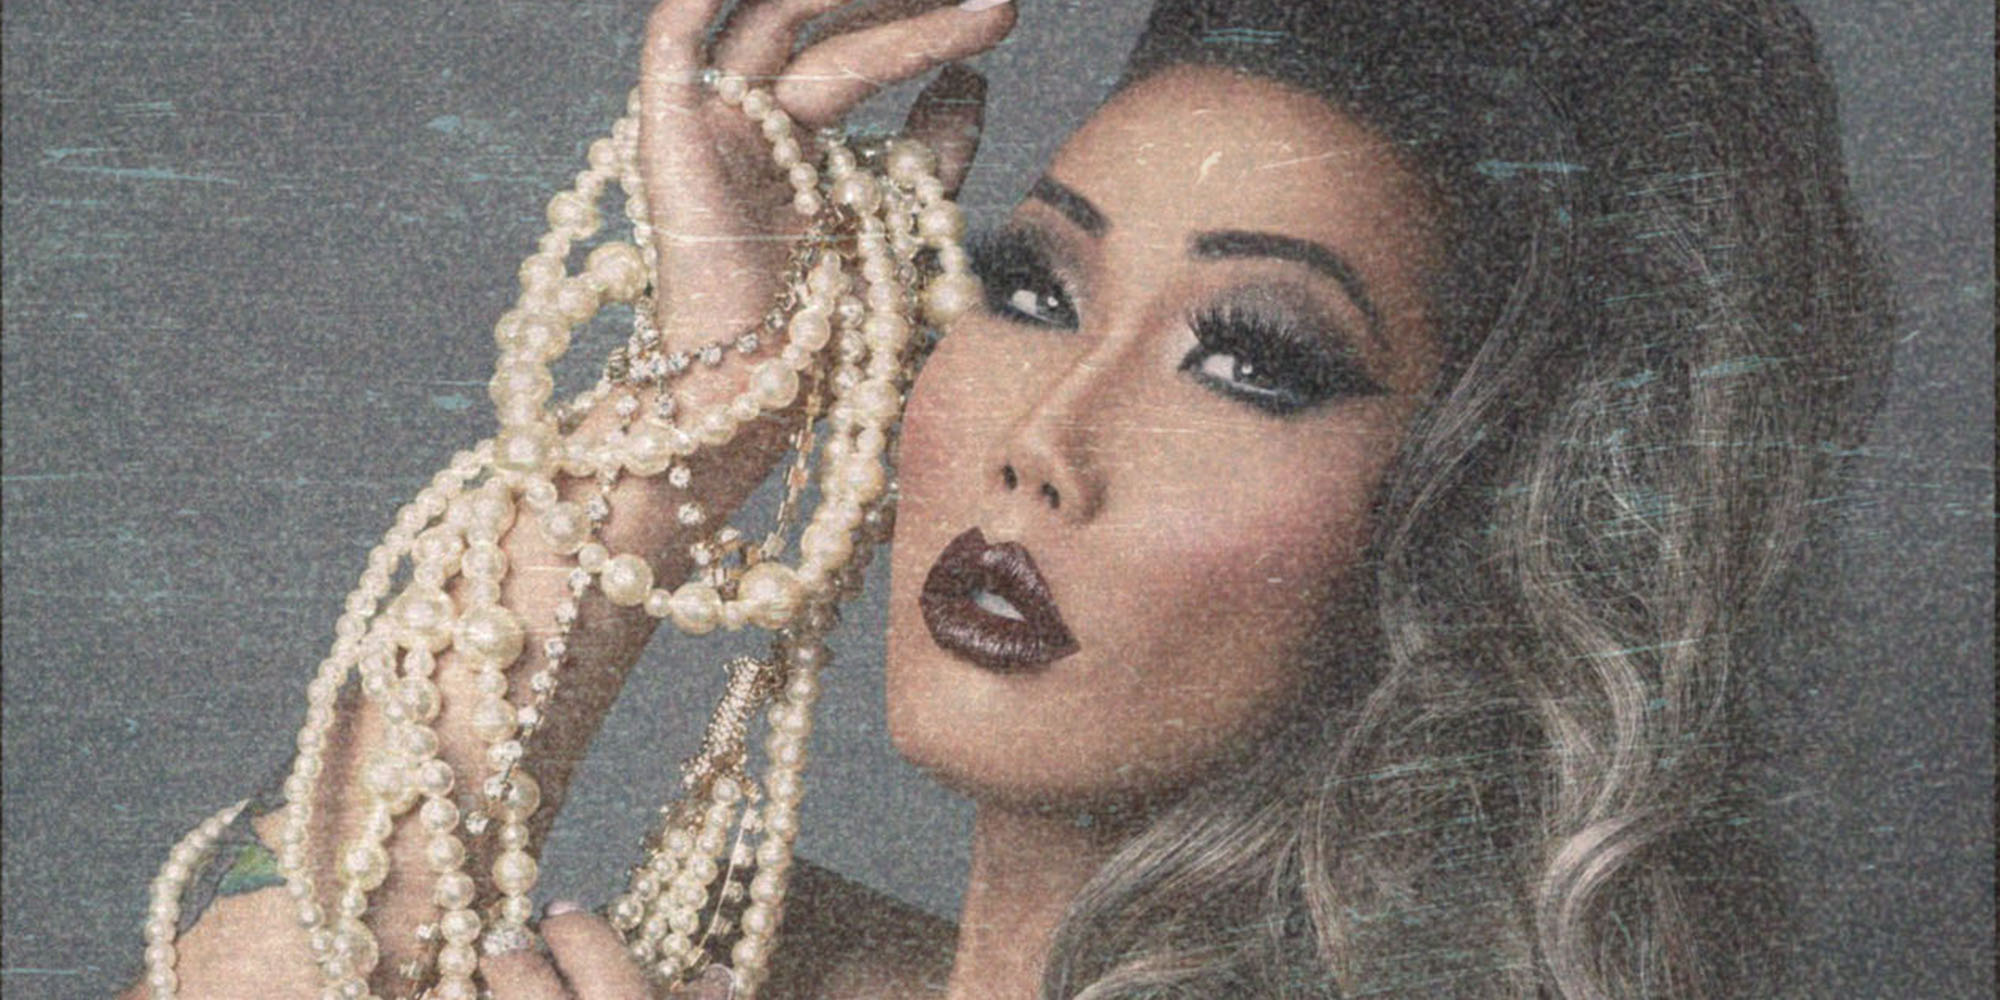 Gia Gunn Fires Off on Playing the 'All Stars 4' Villain and Repping for the Trans Community